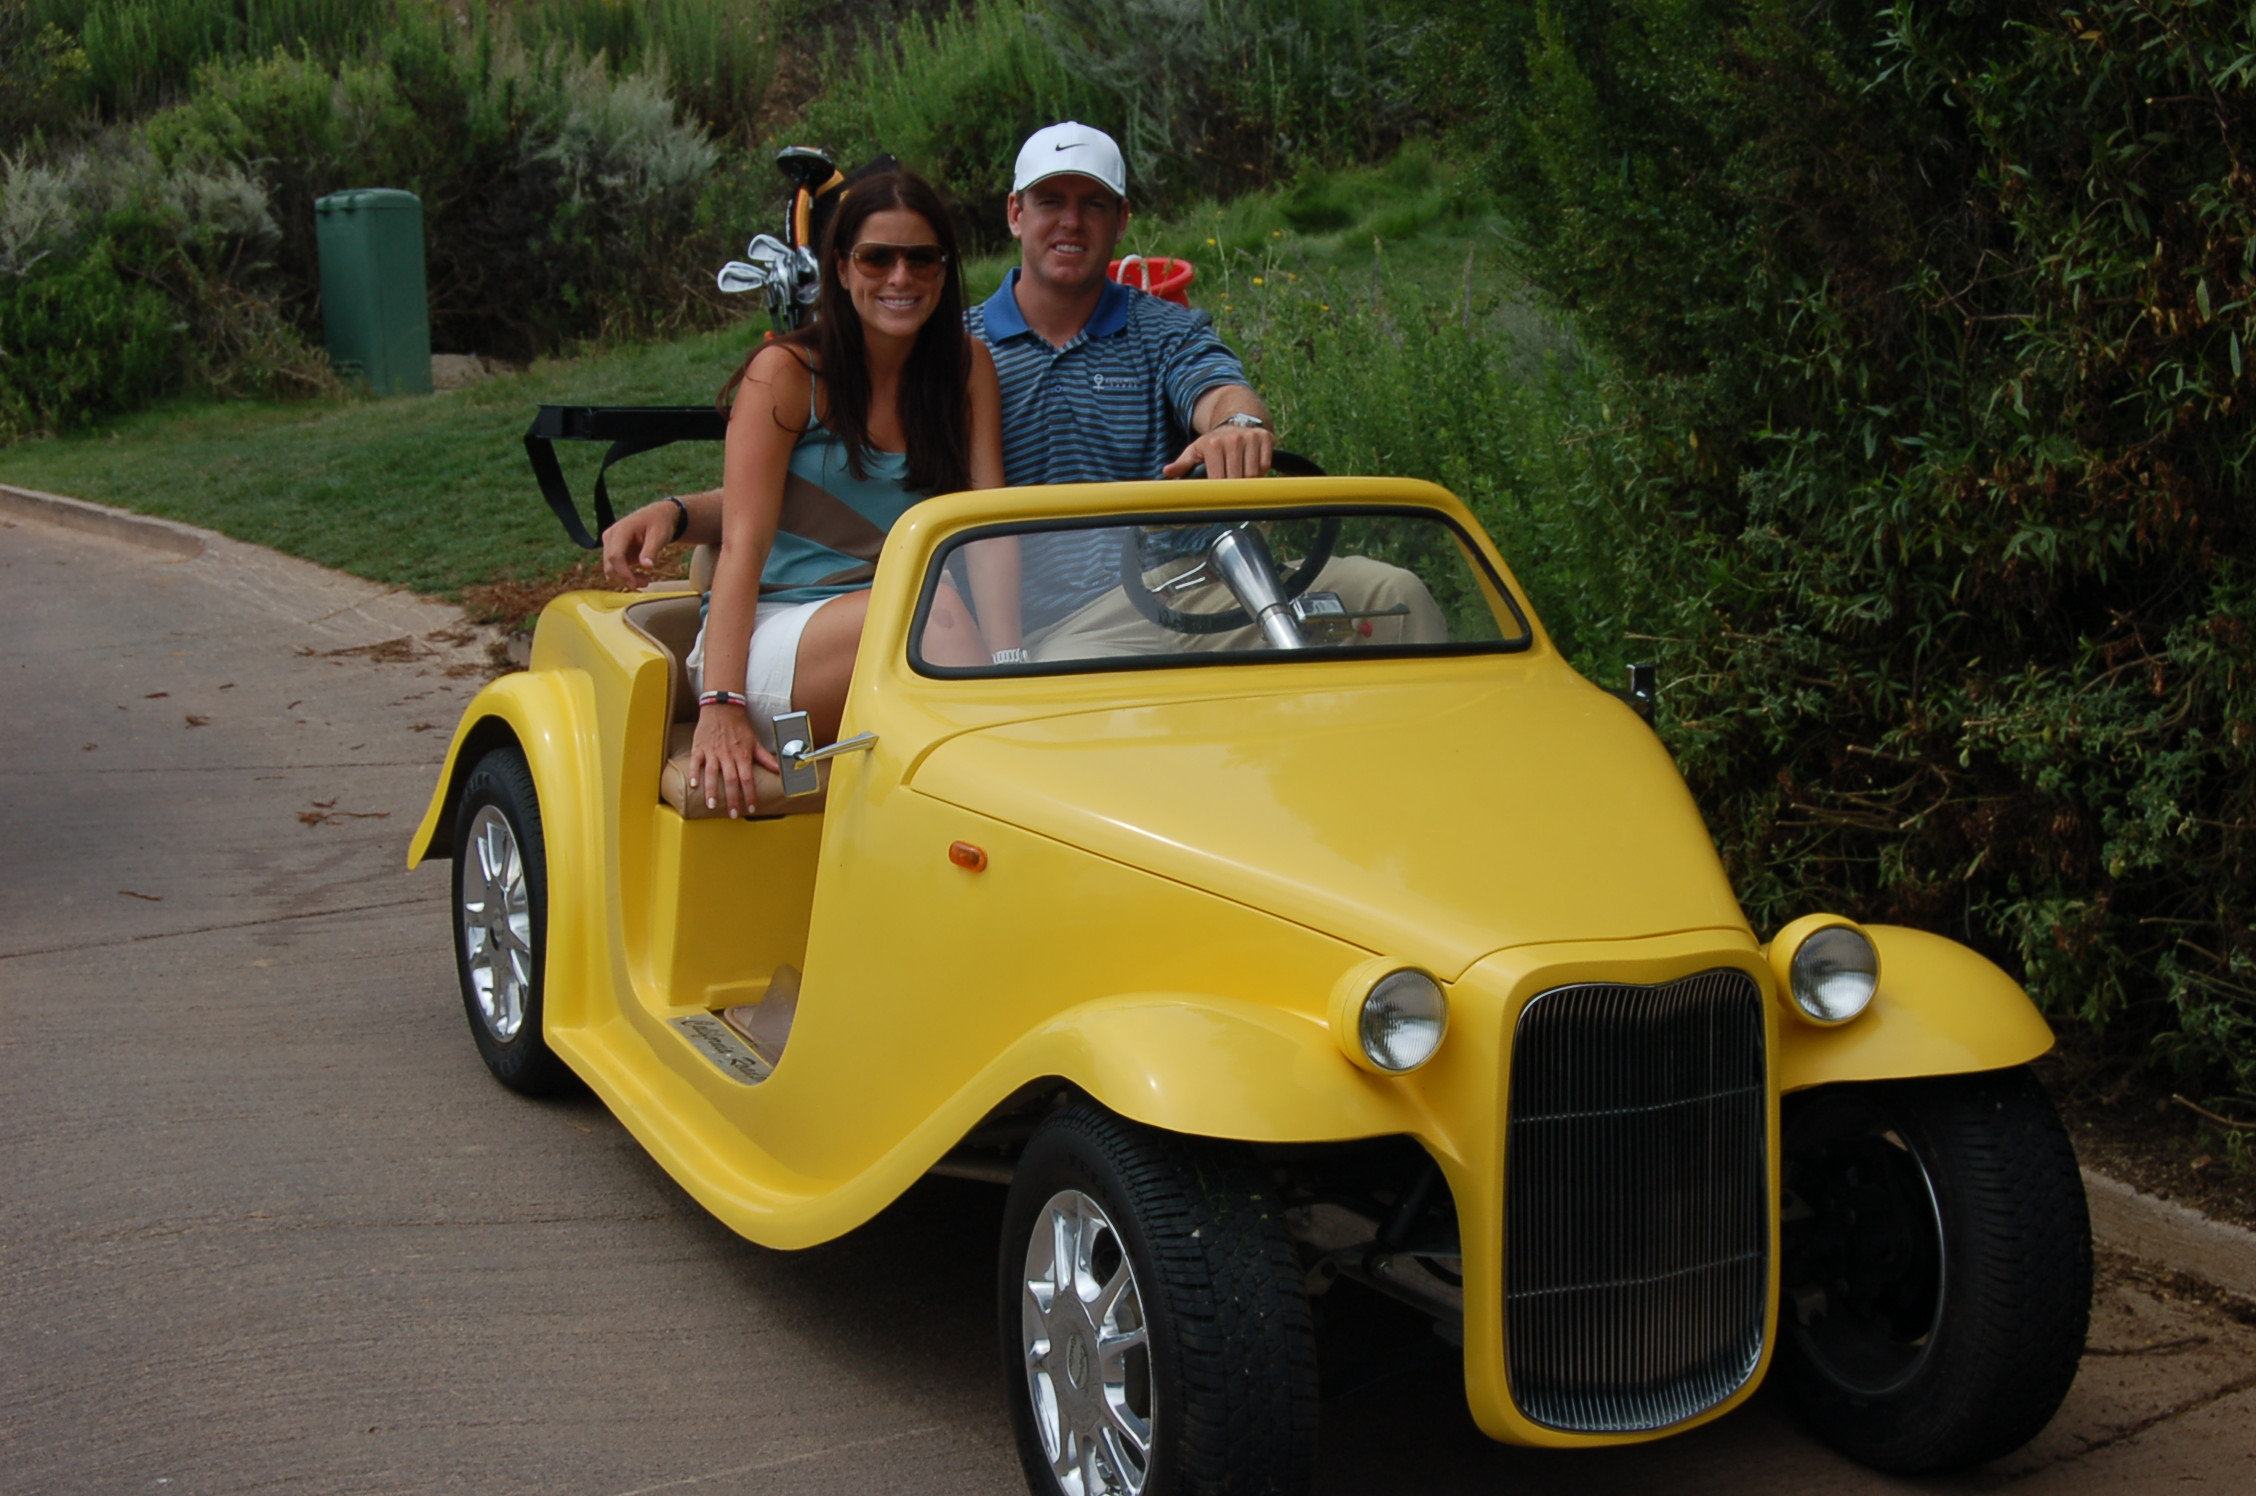 Prime Golf Cars Rental - Sales - Consignment | About Us